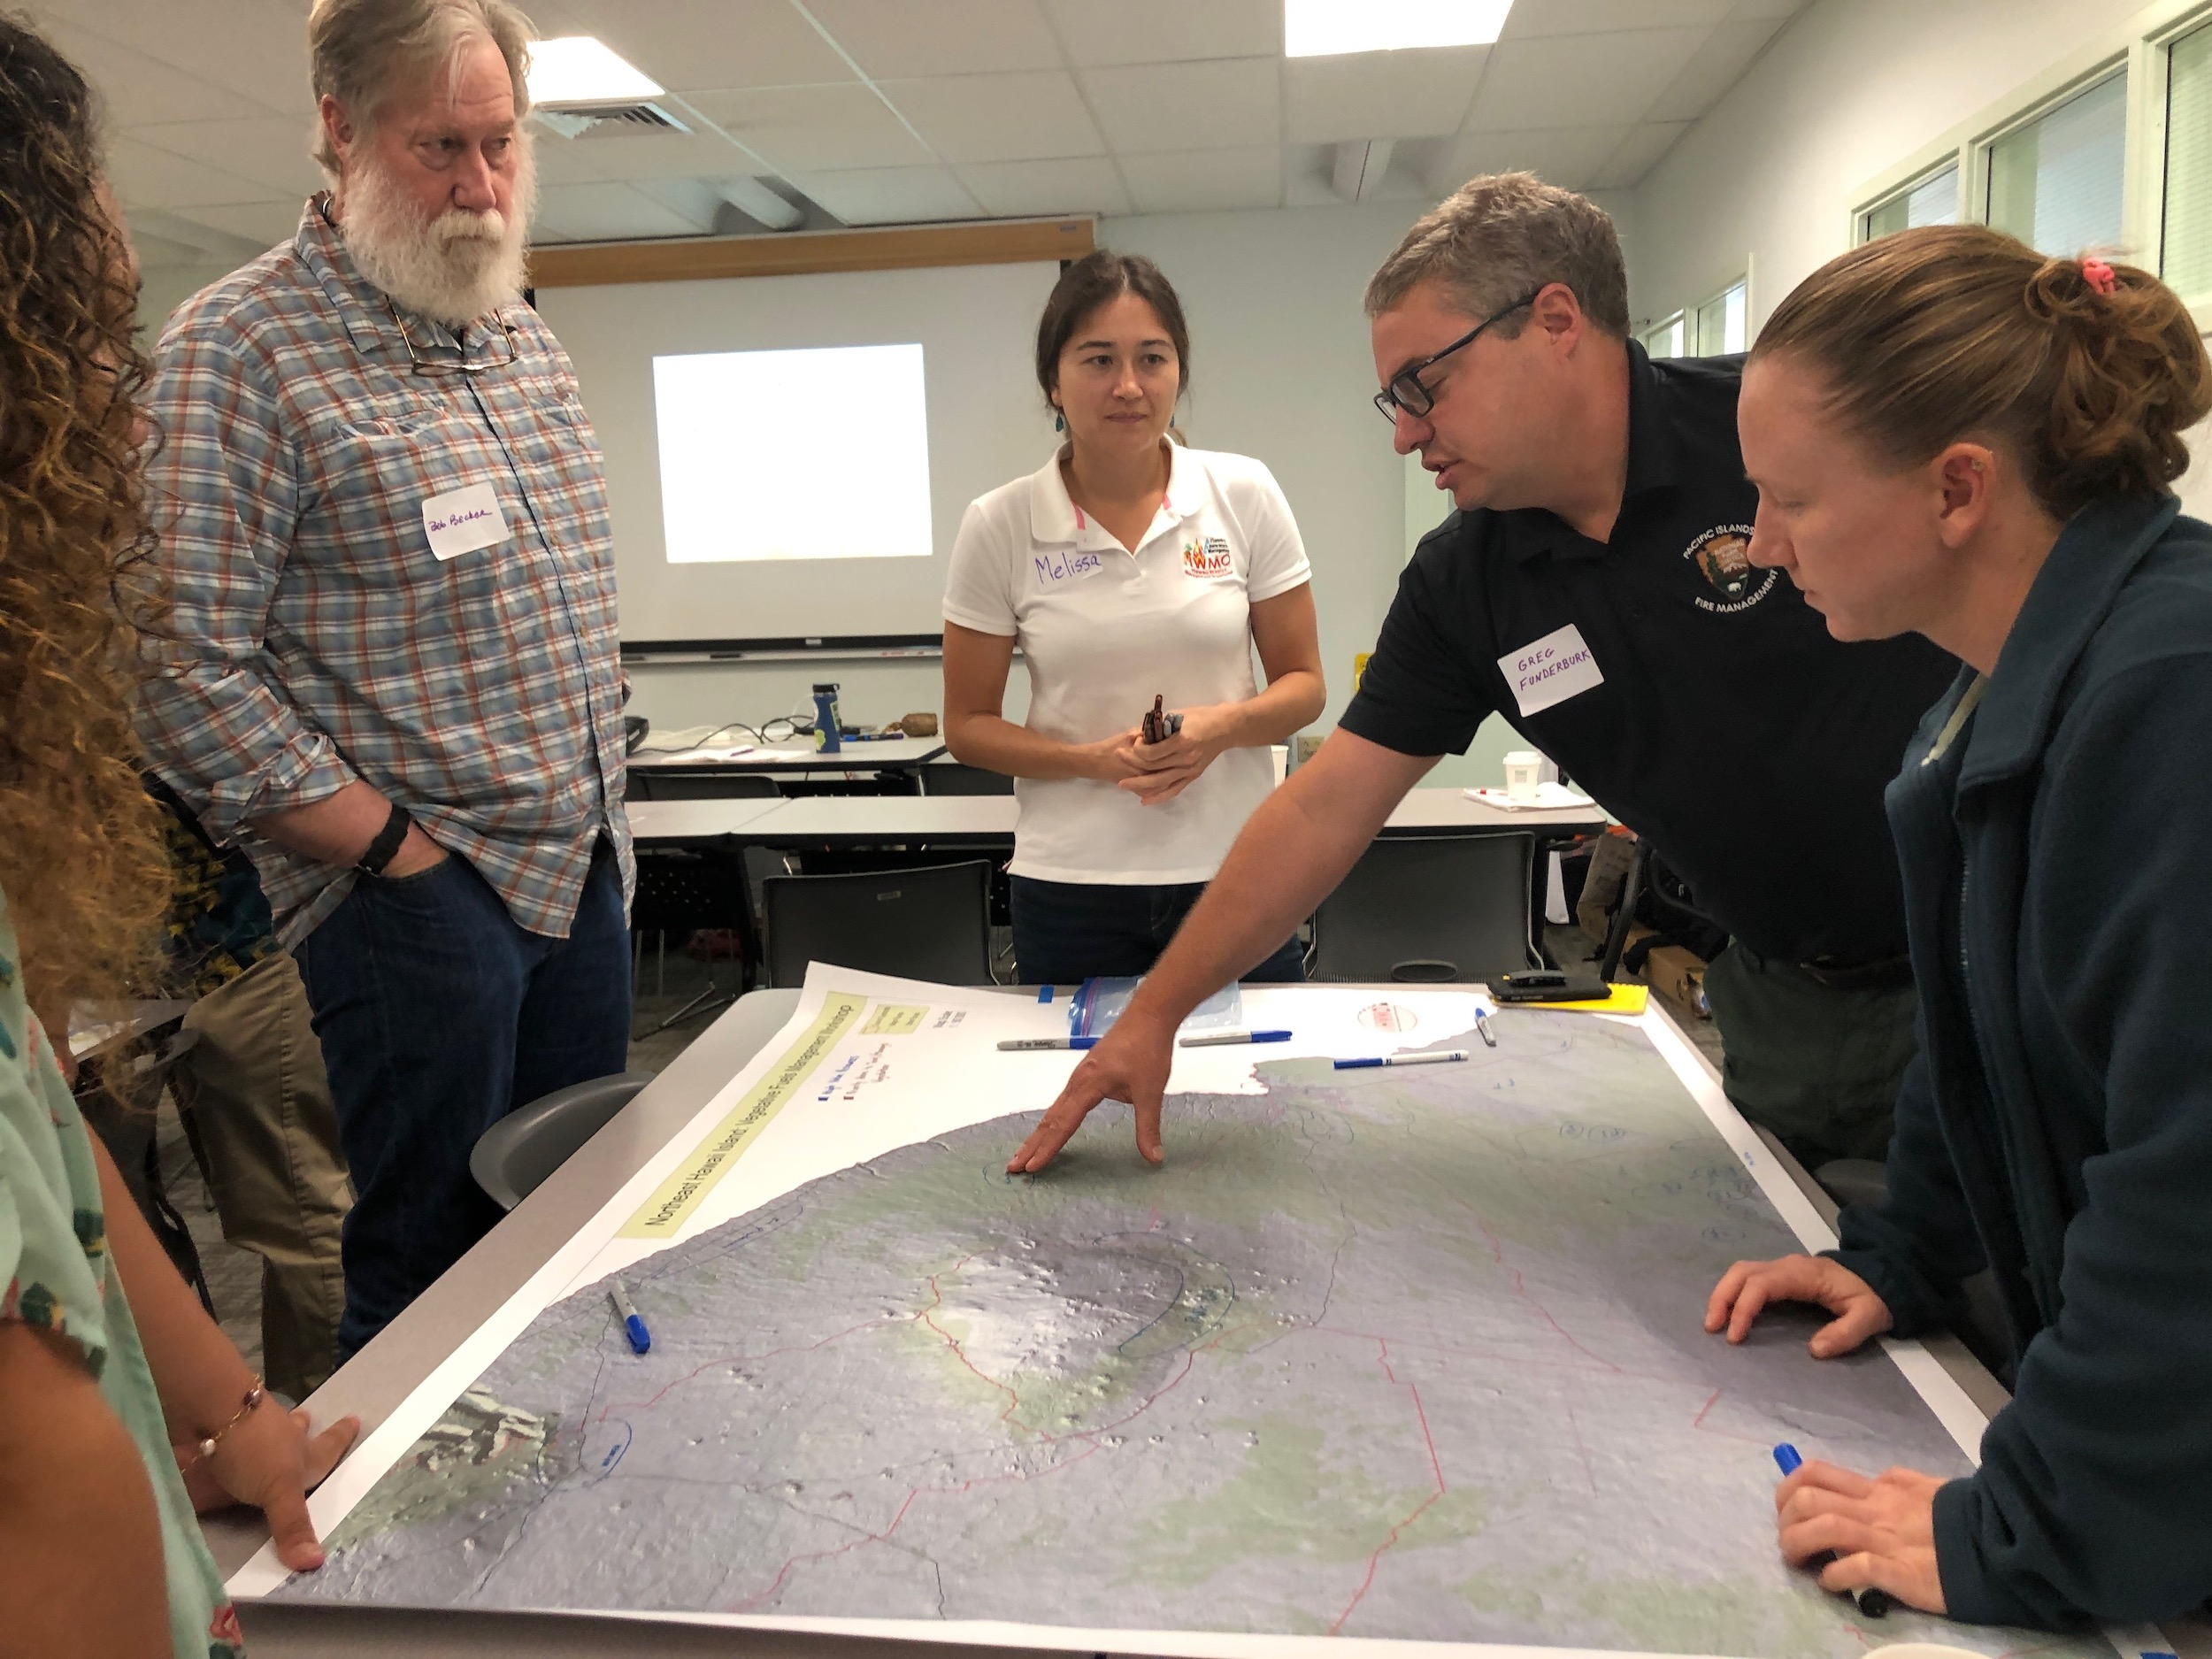 Hawaii Island Hilo Vegetative Fuels Management Collaborative Action Planning Workshop_2_22_2019_12.jpg